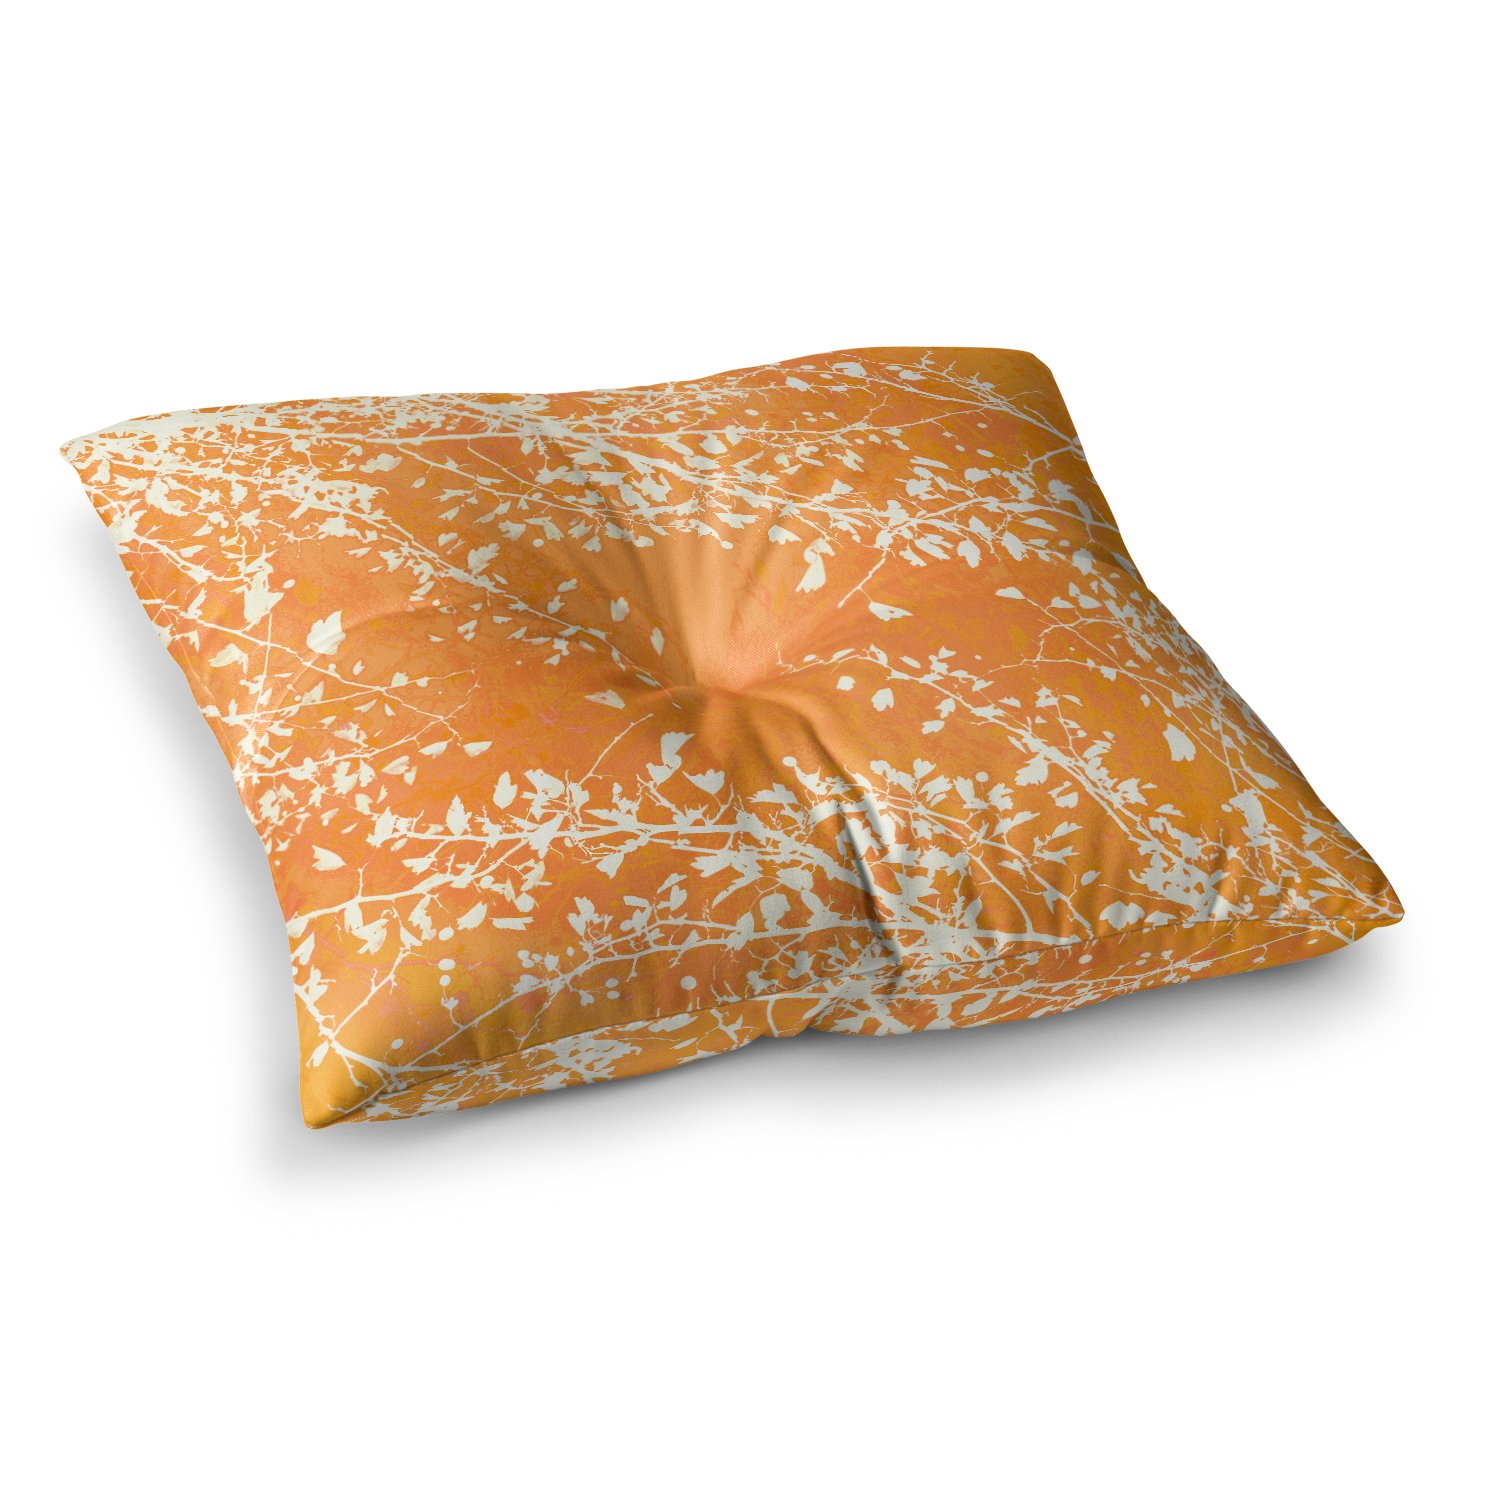 Kess InHouse Iris Lehnhardt Twigs Silhouette Orange Tangerine 26 x 26 Square Floor Pillow